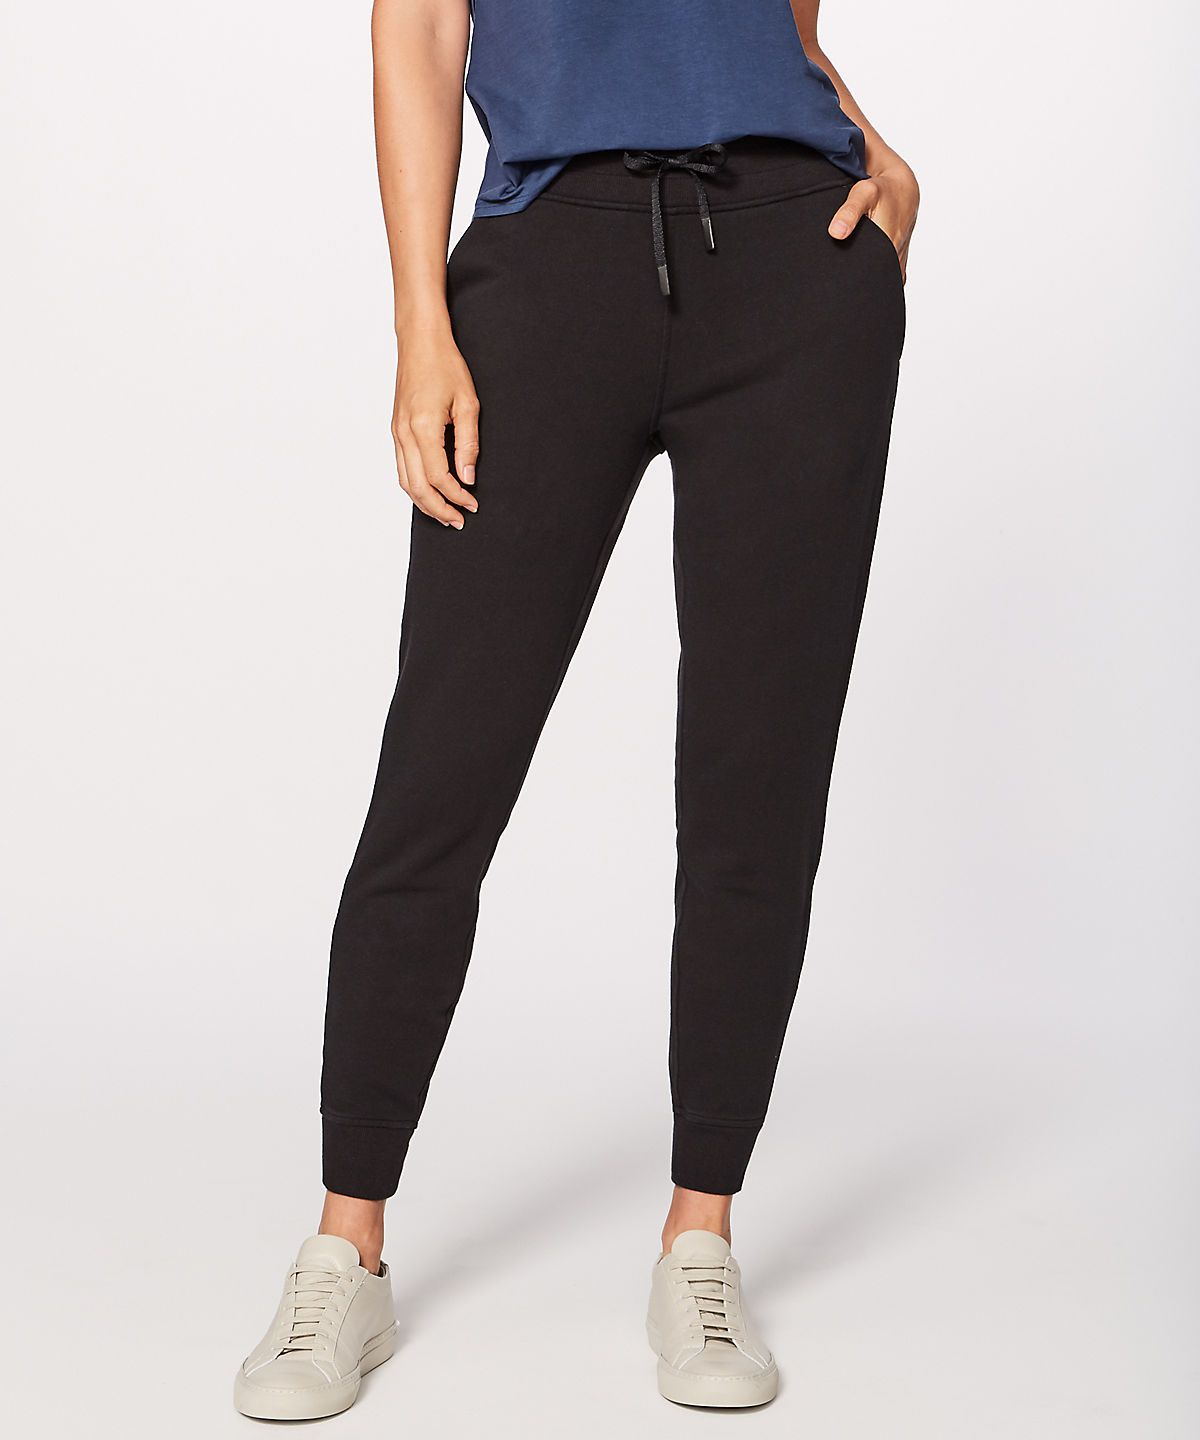 c18cbc3b3 Lululemon Warm Down Jogger - Black | Dear Santa... | Joggers womens ...